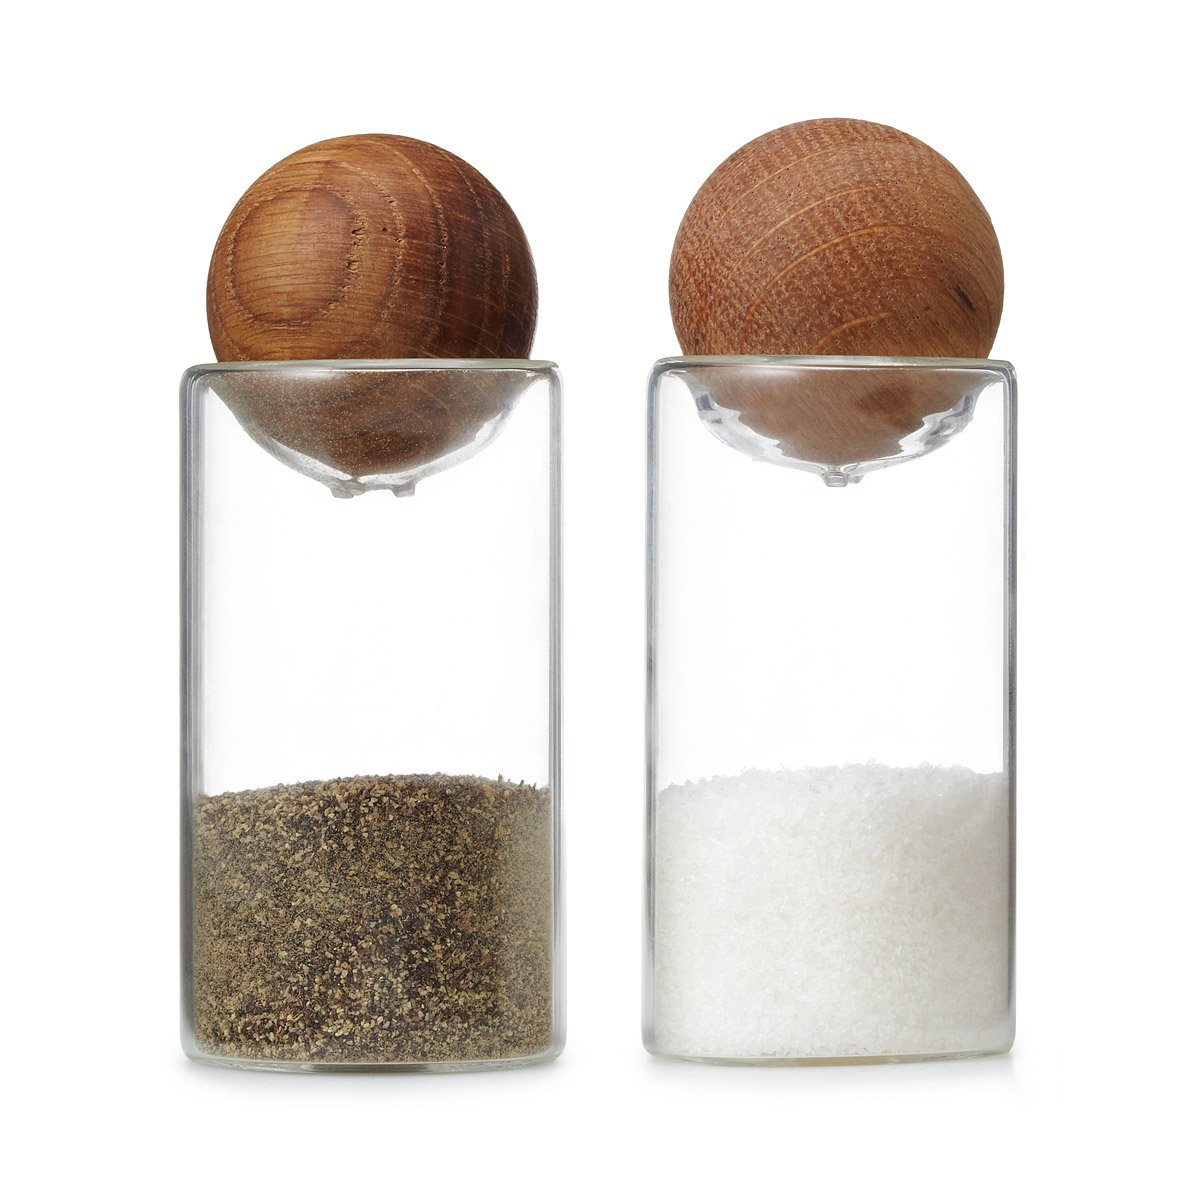 oval oak salt and pepper shakers  glass spice jars  uncommongoods - oval oak salt and pepper shakers  thumbnail